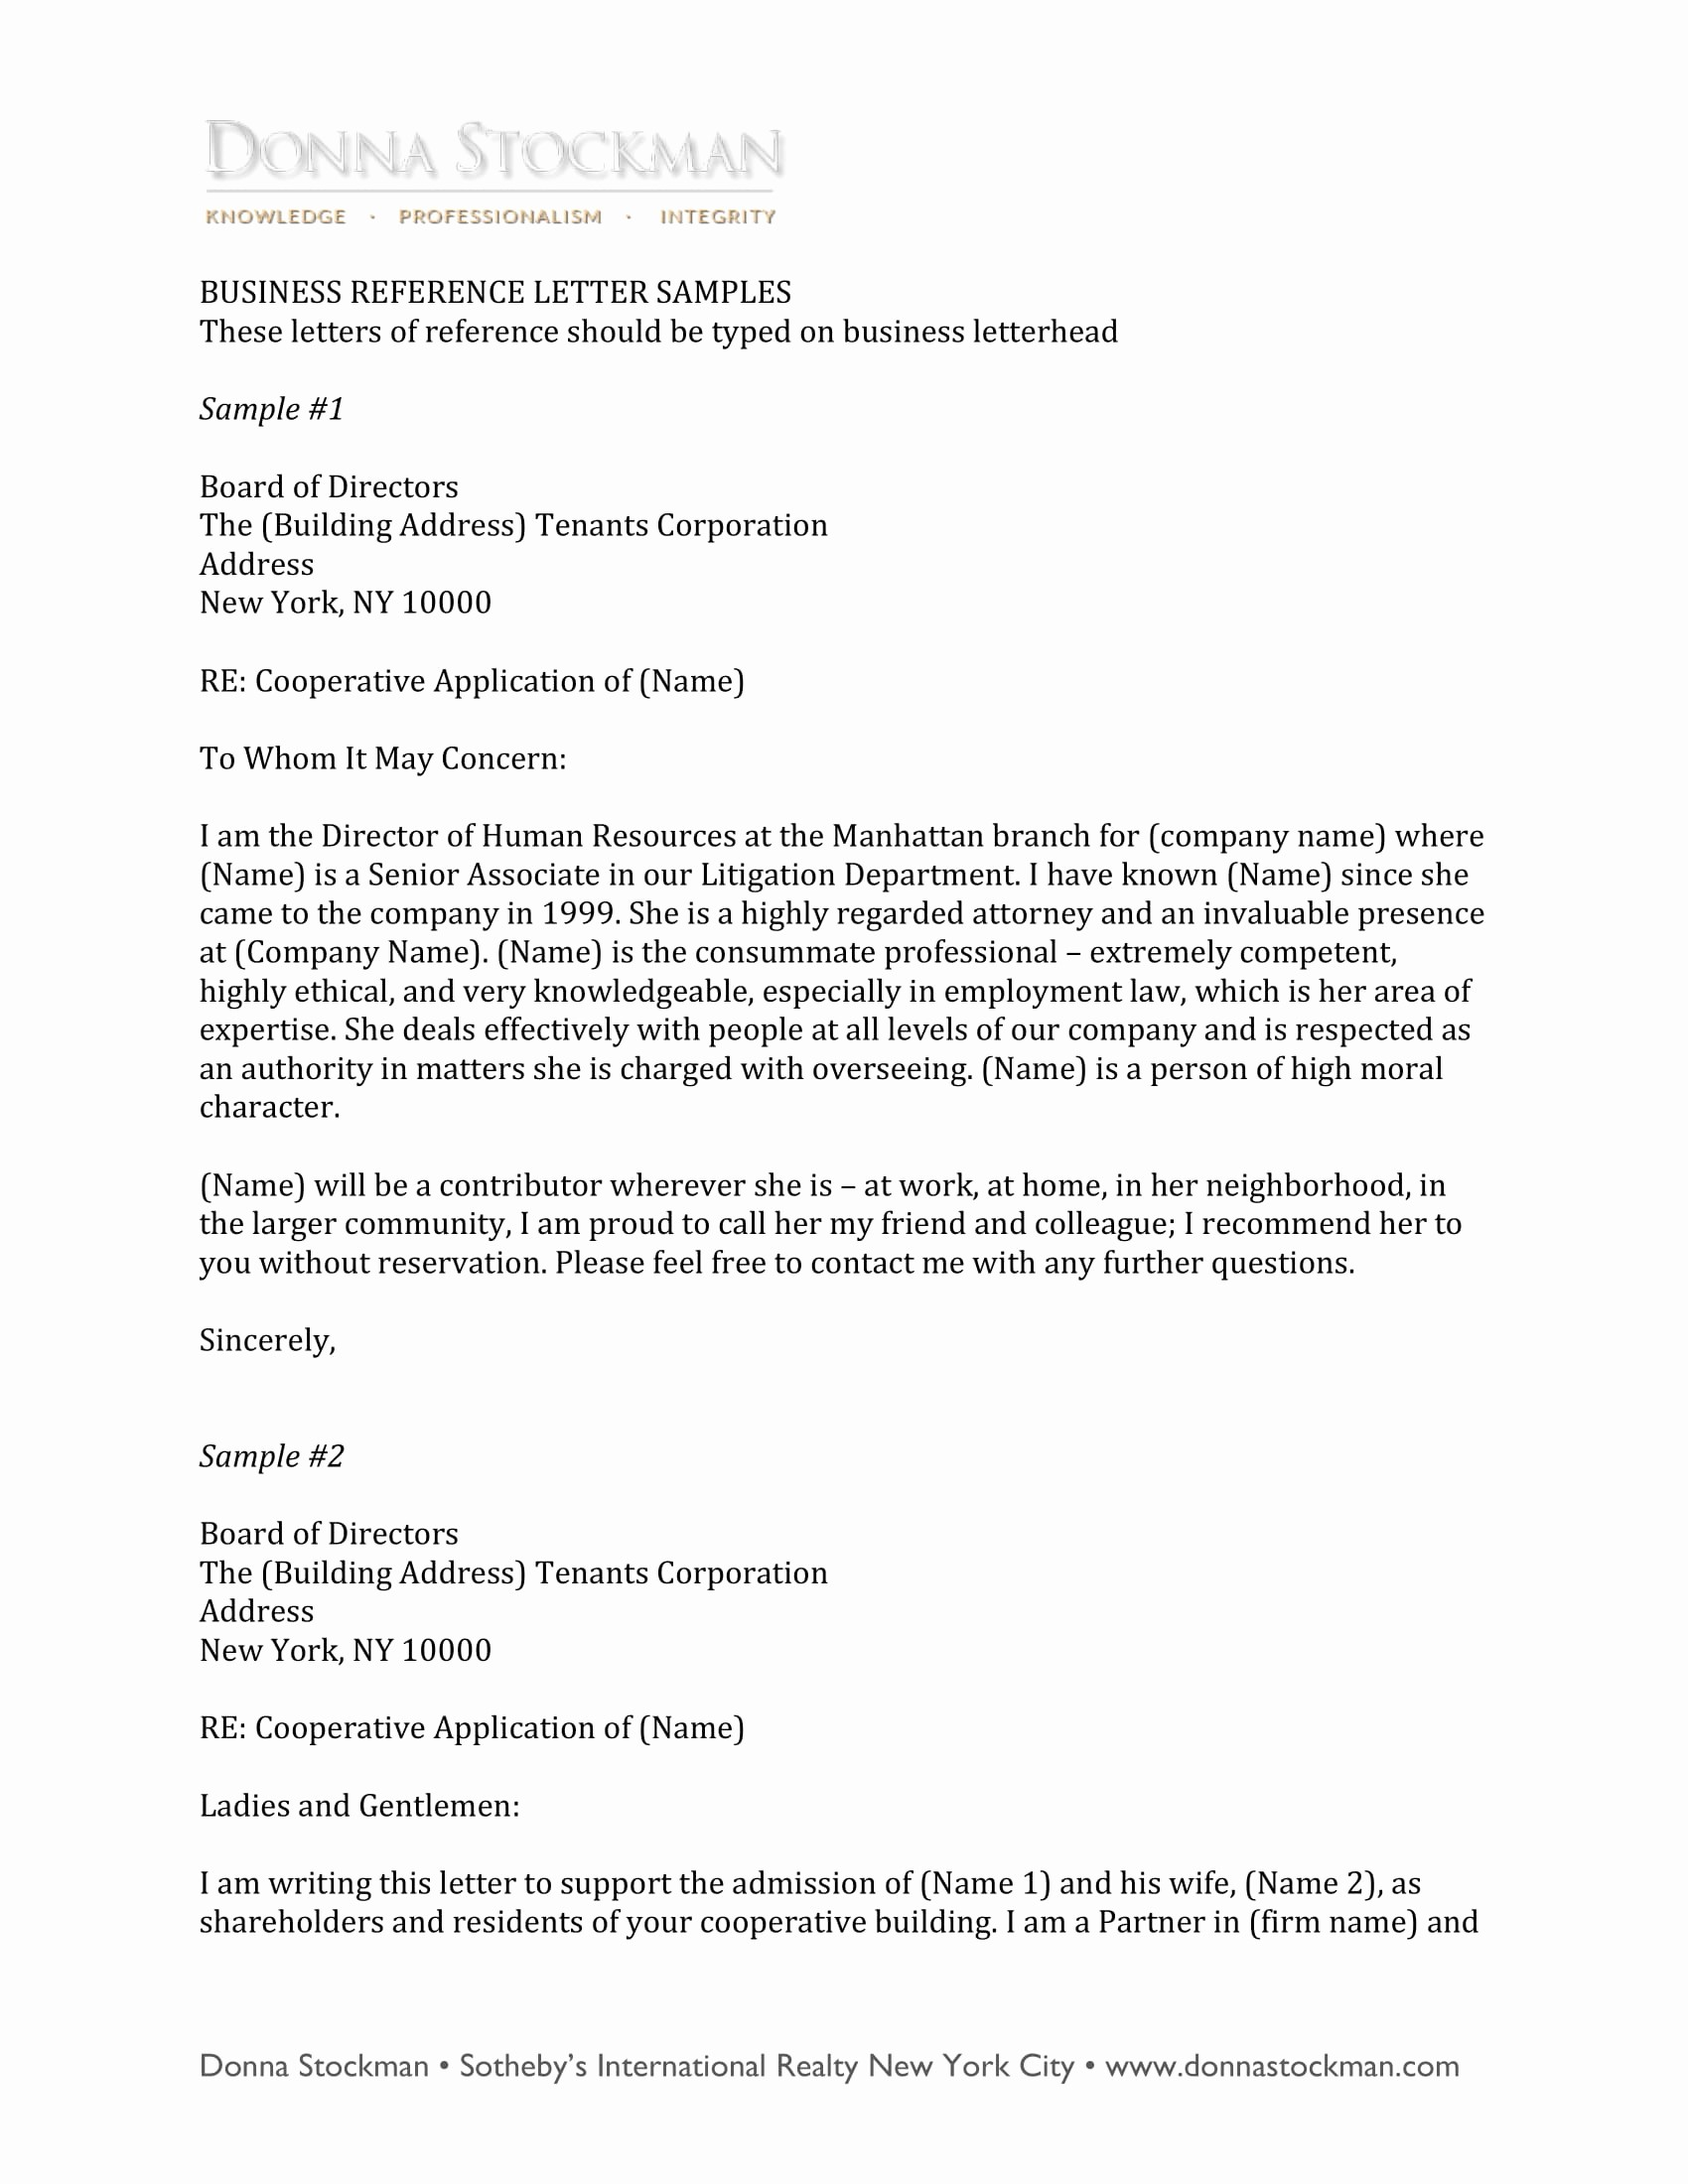 Formal Letter Of Recommendation Template Beautiful 10 Business Reference Letter Examples Pdf